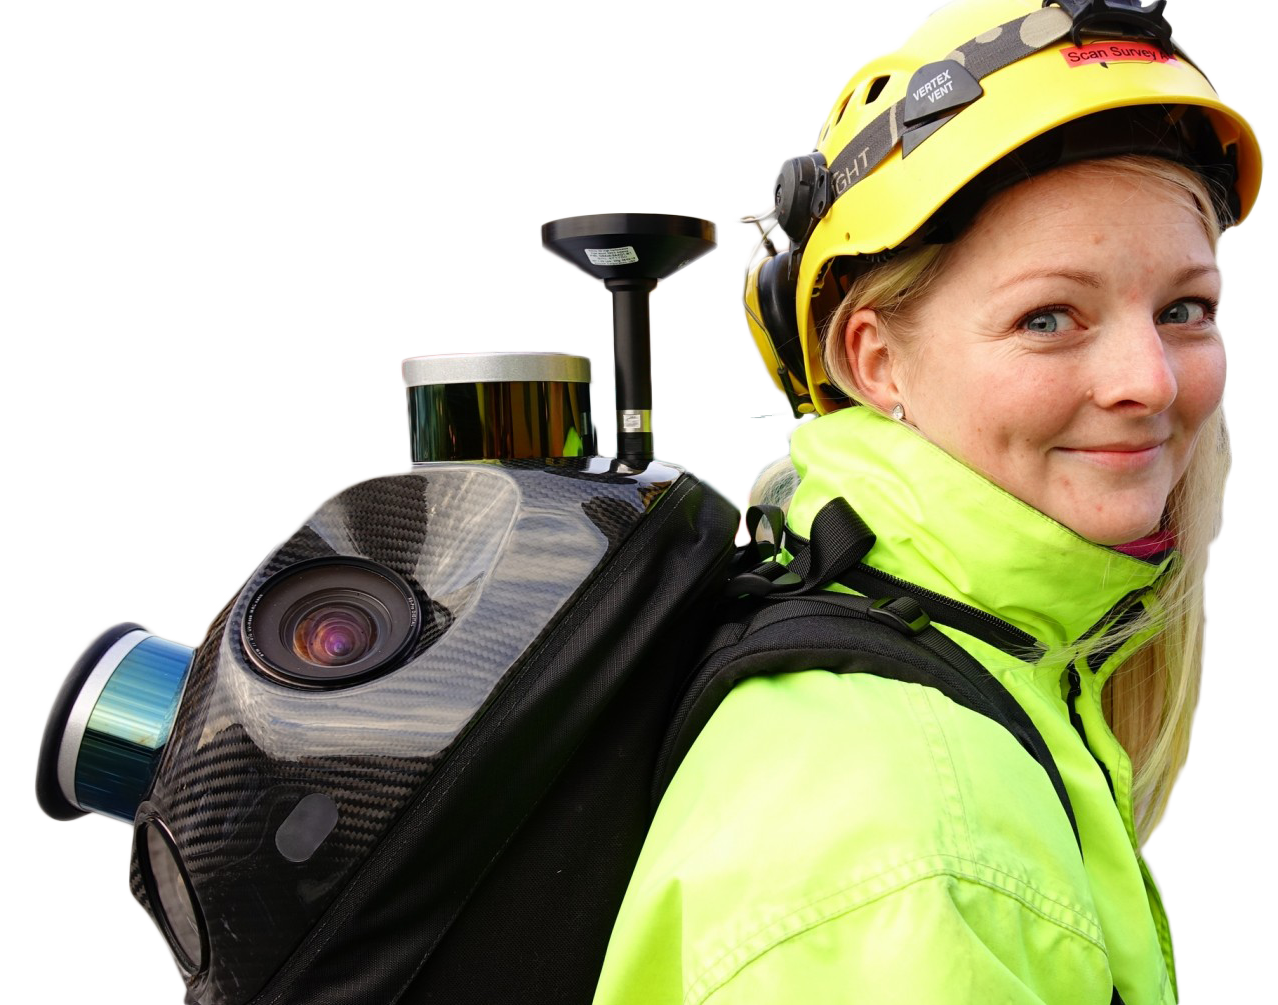 d54346dc Scan Survey - Specialists within surveying and geodata